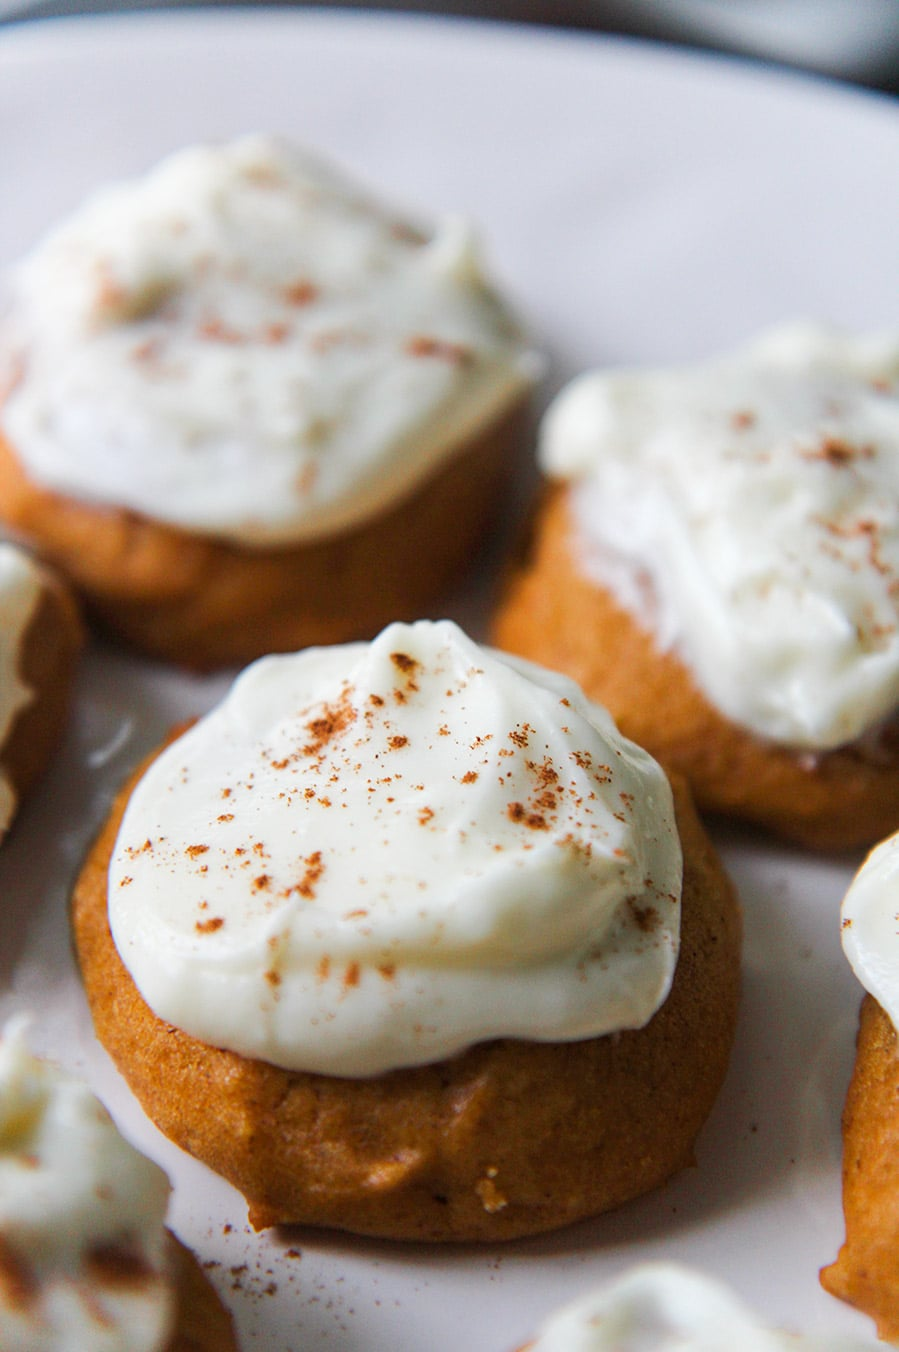 pumpkin cookies with cream cheese frosting and cinnamon on top.